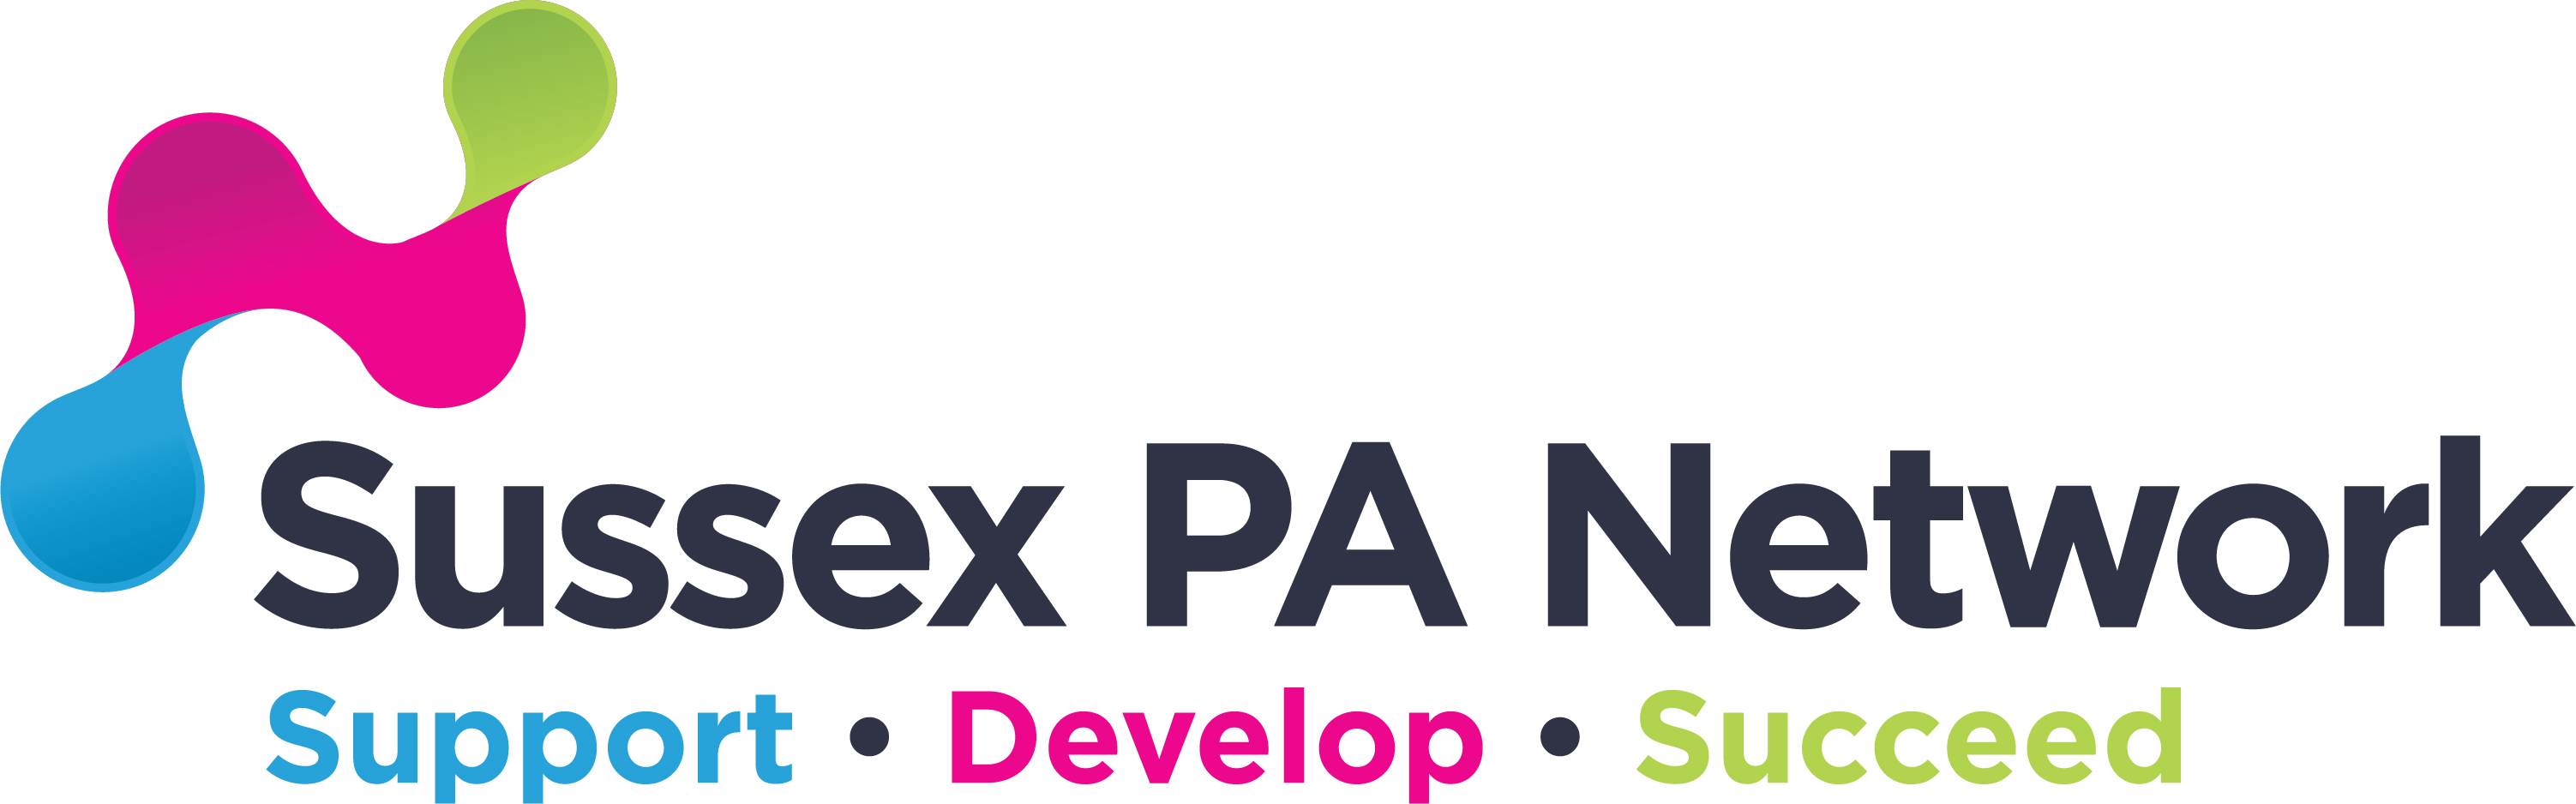 Sussex PA Network